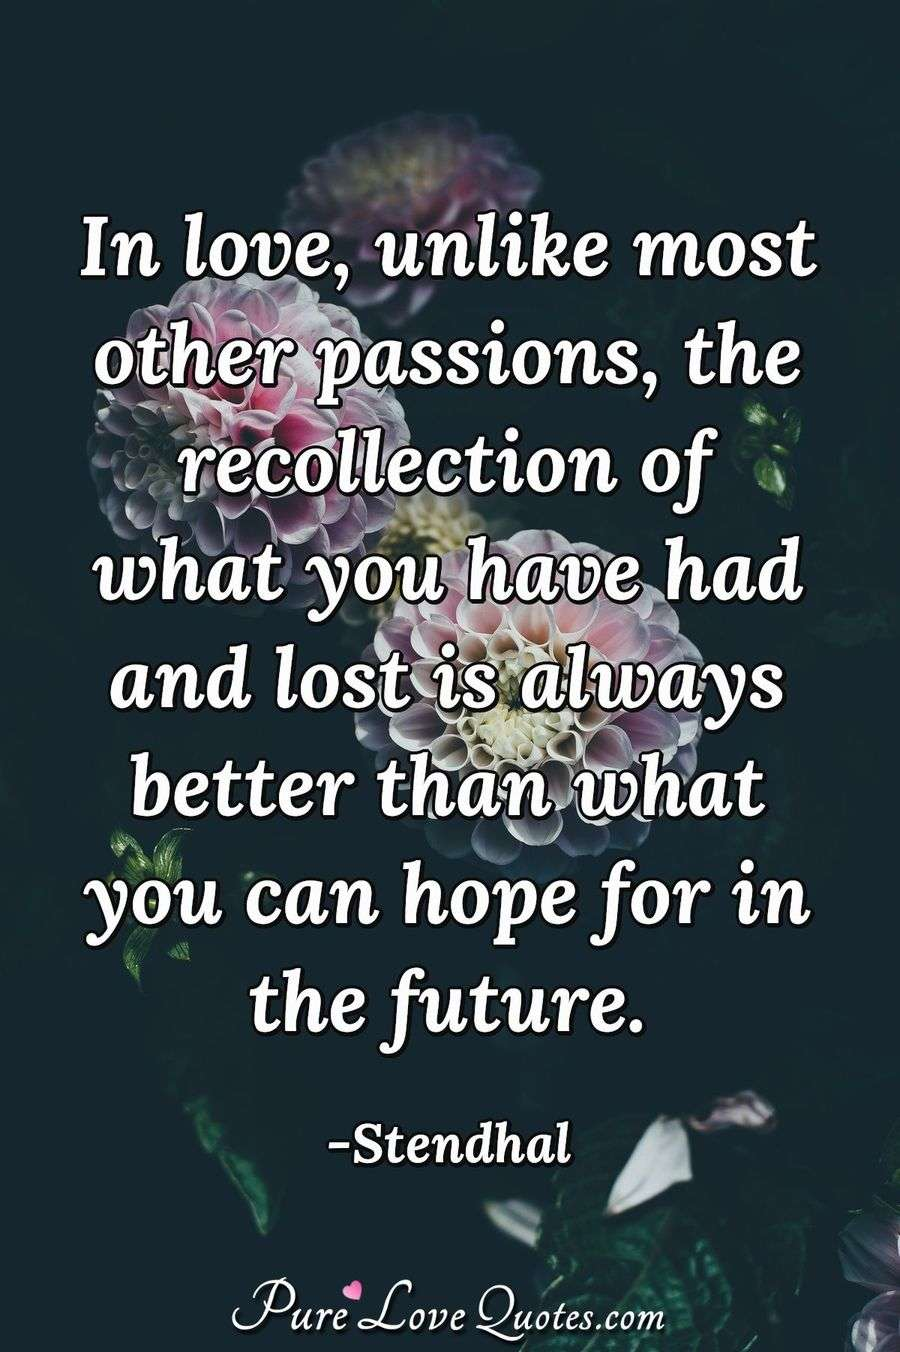 In love, unlike most other passions, the recollection of what you have had and lost is always better than what you can hope for in the future. - Stendhal